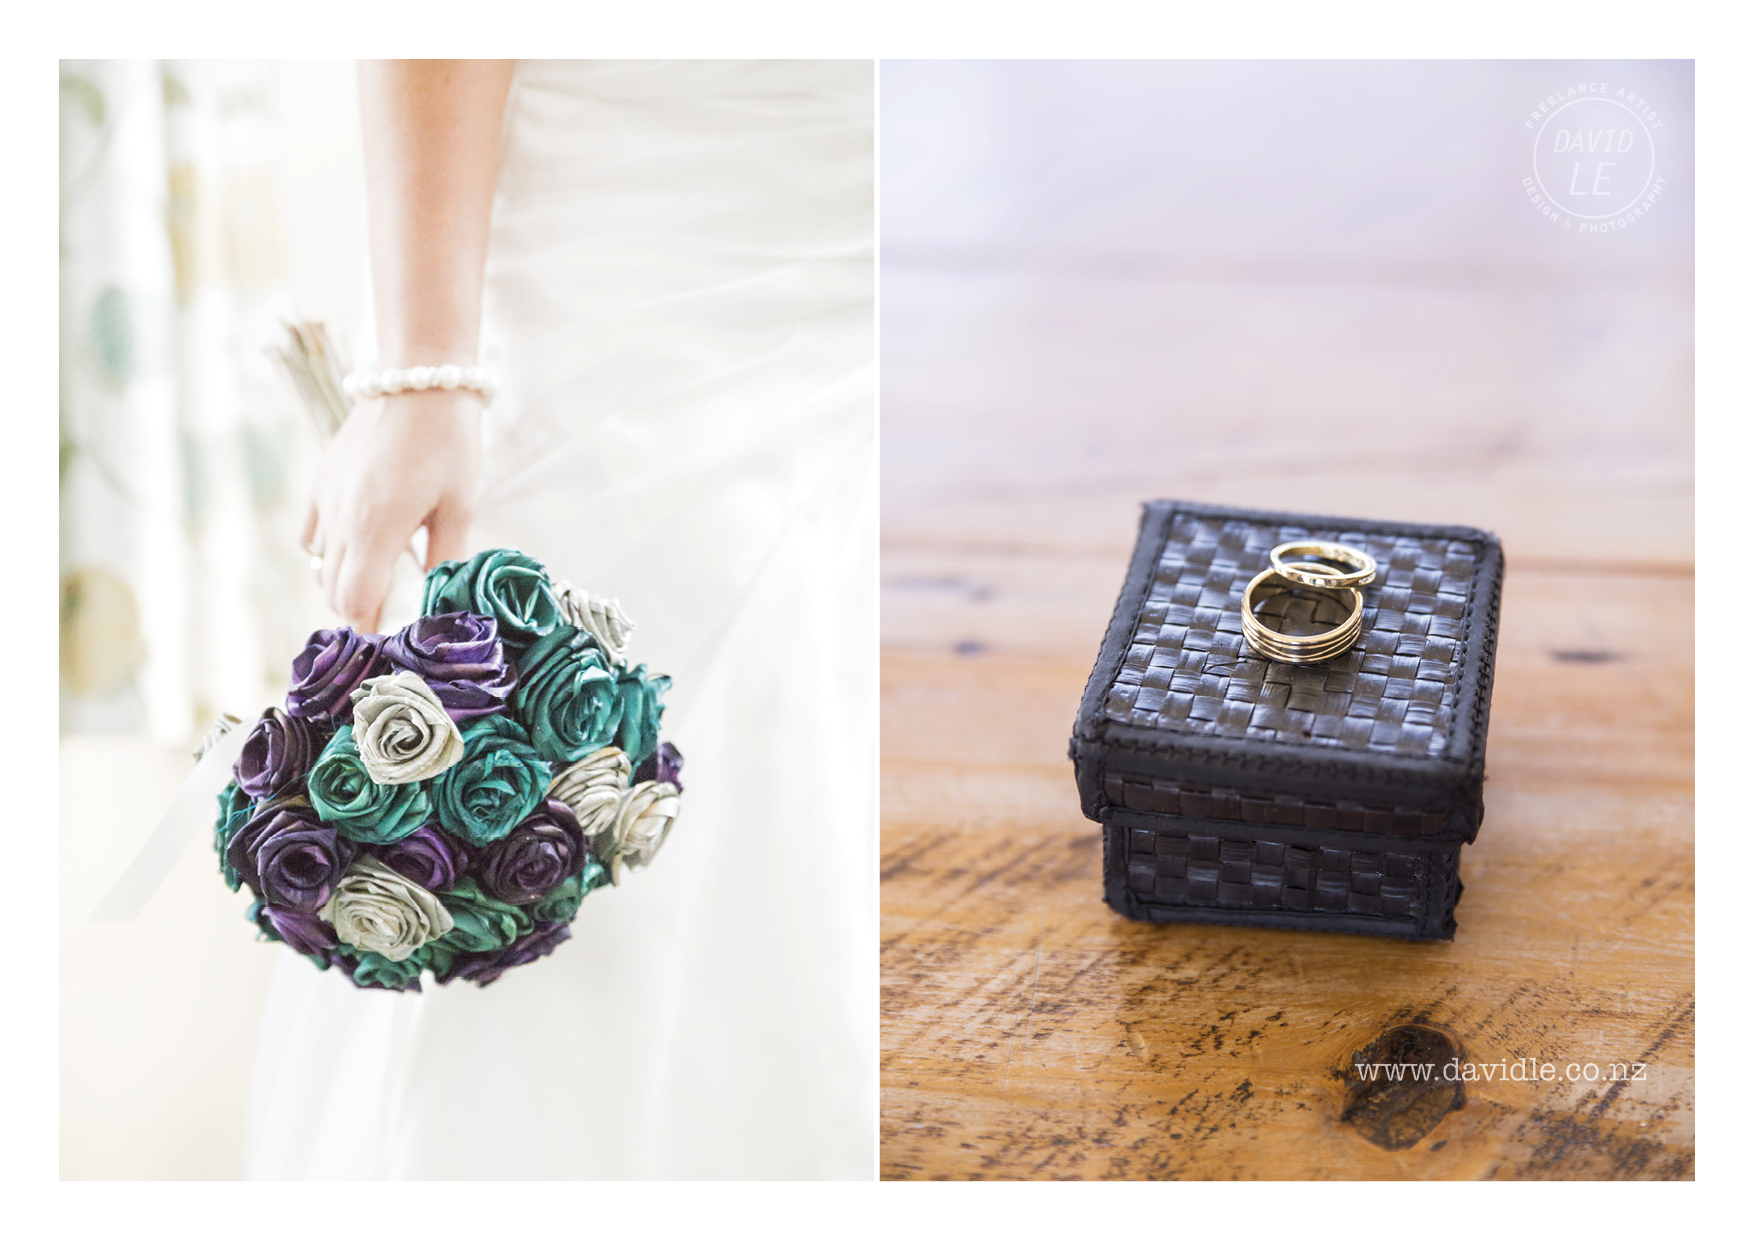 Every wedding needs A/ a bouquet and B/ some rings, sneak peak from Racheal & Wills Wedding!